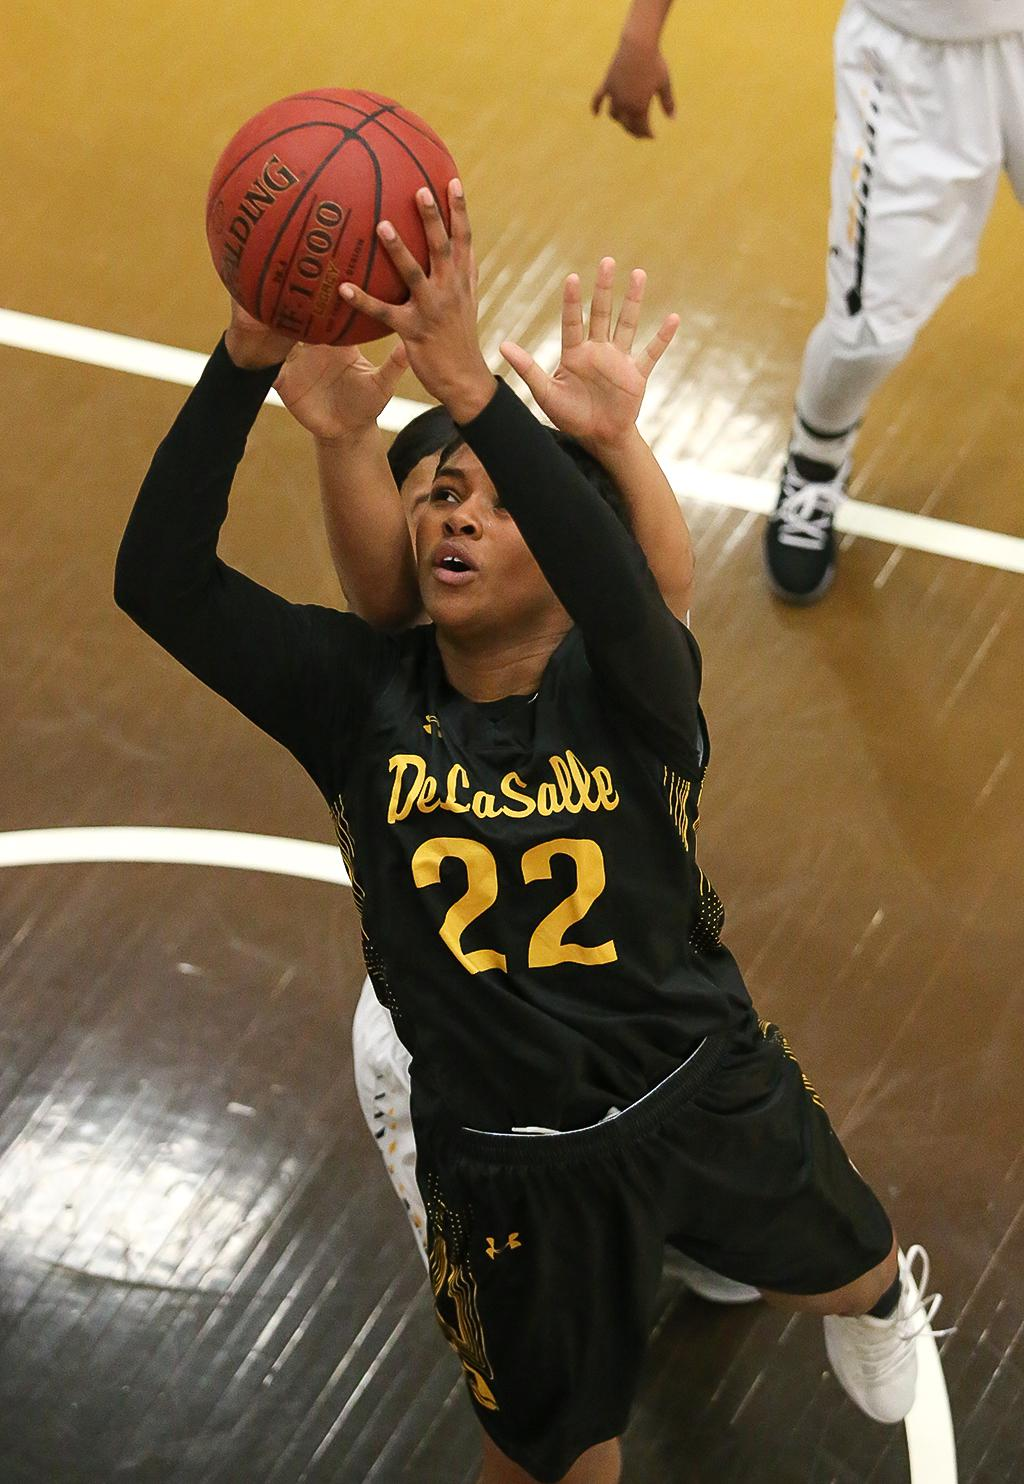 DeLaSalle junior Nurjei Weems (22) drives the lane for two of her game-high 18 points. The Islanders built an early first half lead and held on to beat the Cougars 68-54 advancing to the section final game on Thursday. Photo by Cheryl Myers, SportsEngine